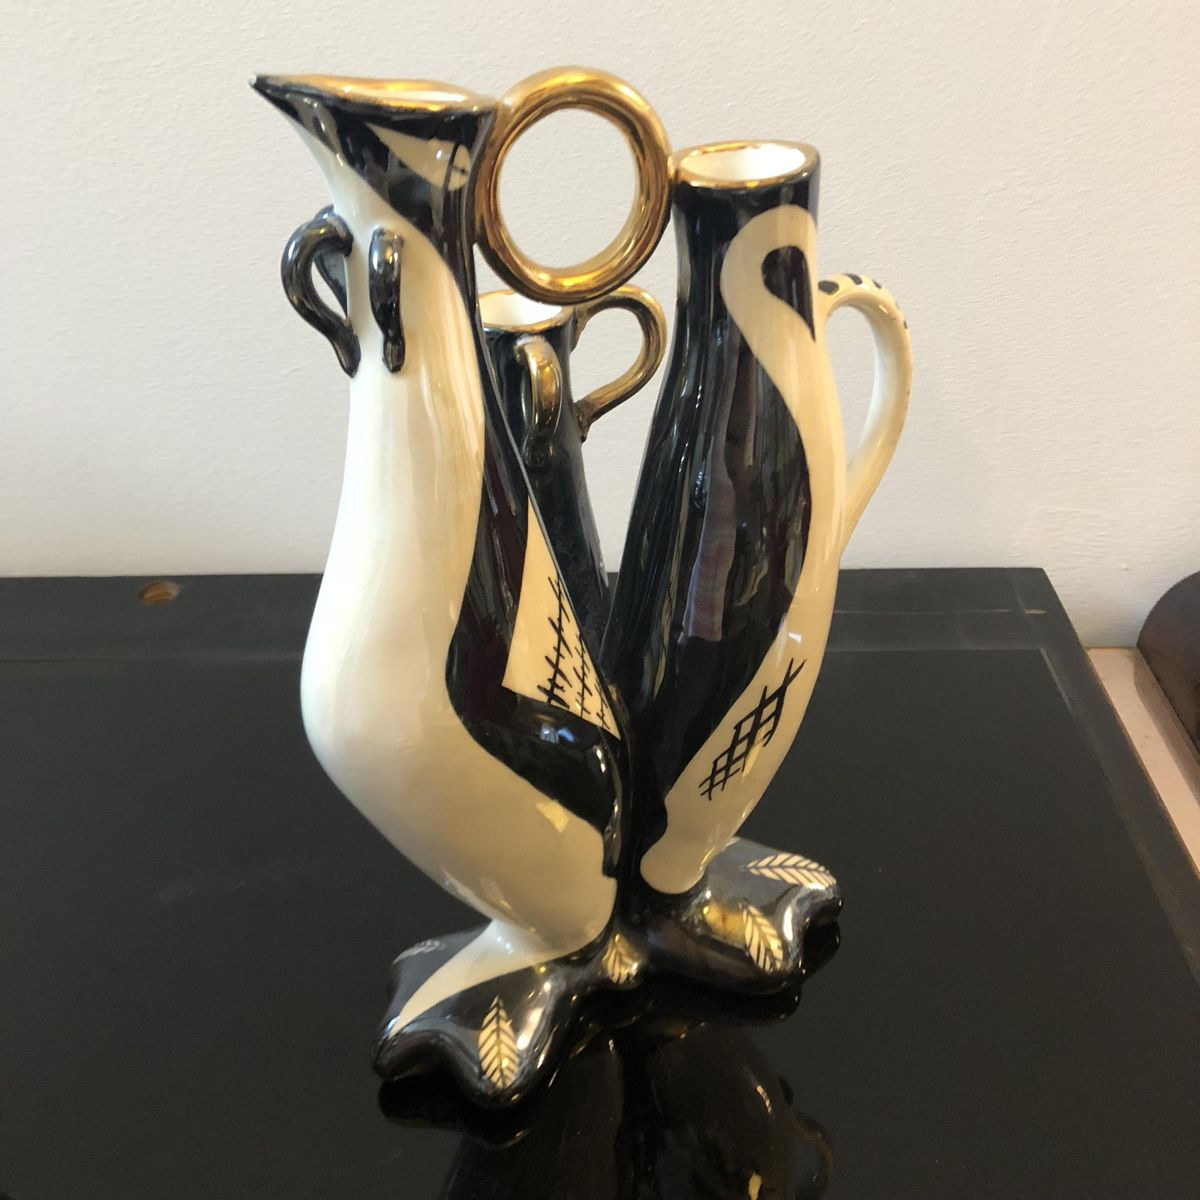 blown glass vases made in italy of italian black and white ceramic vases by g girardi 1950s set of 2 with regard to price per set